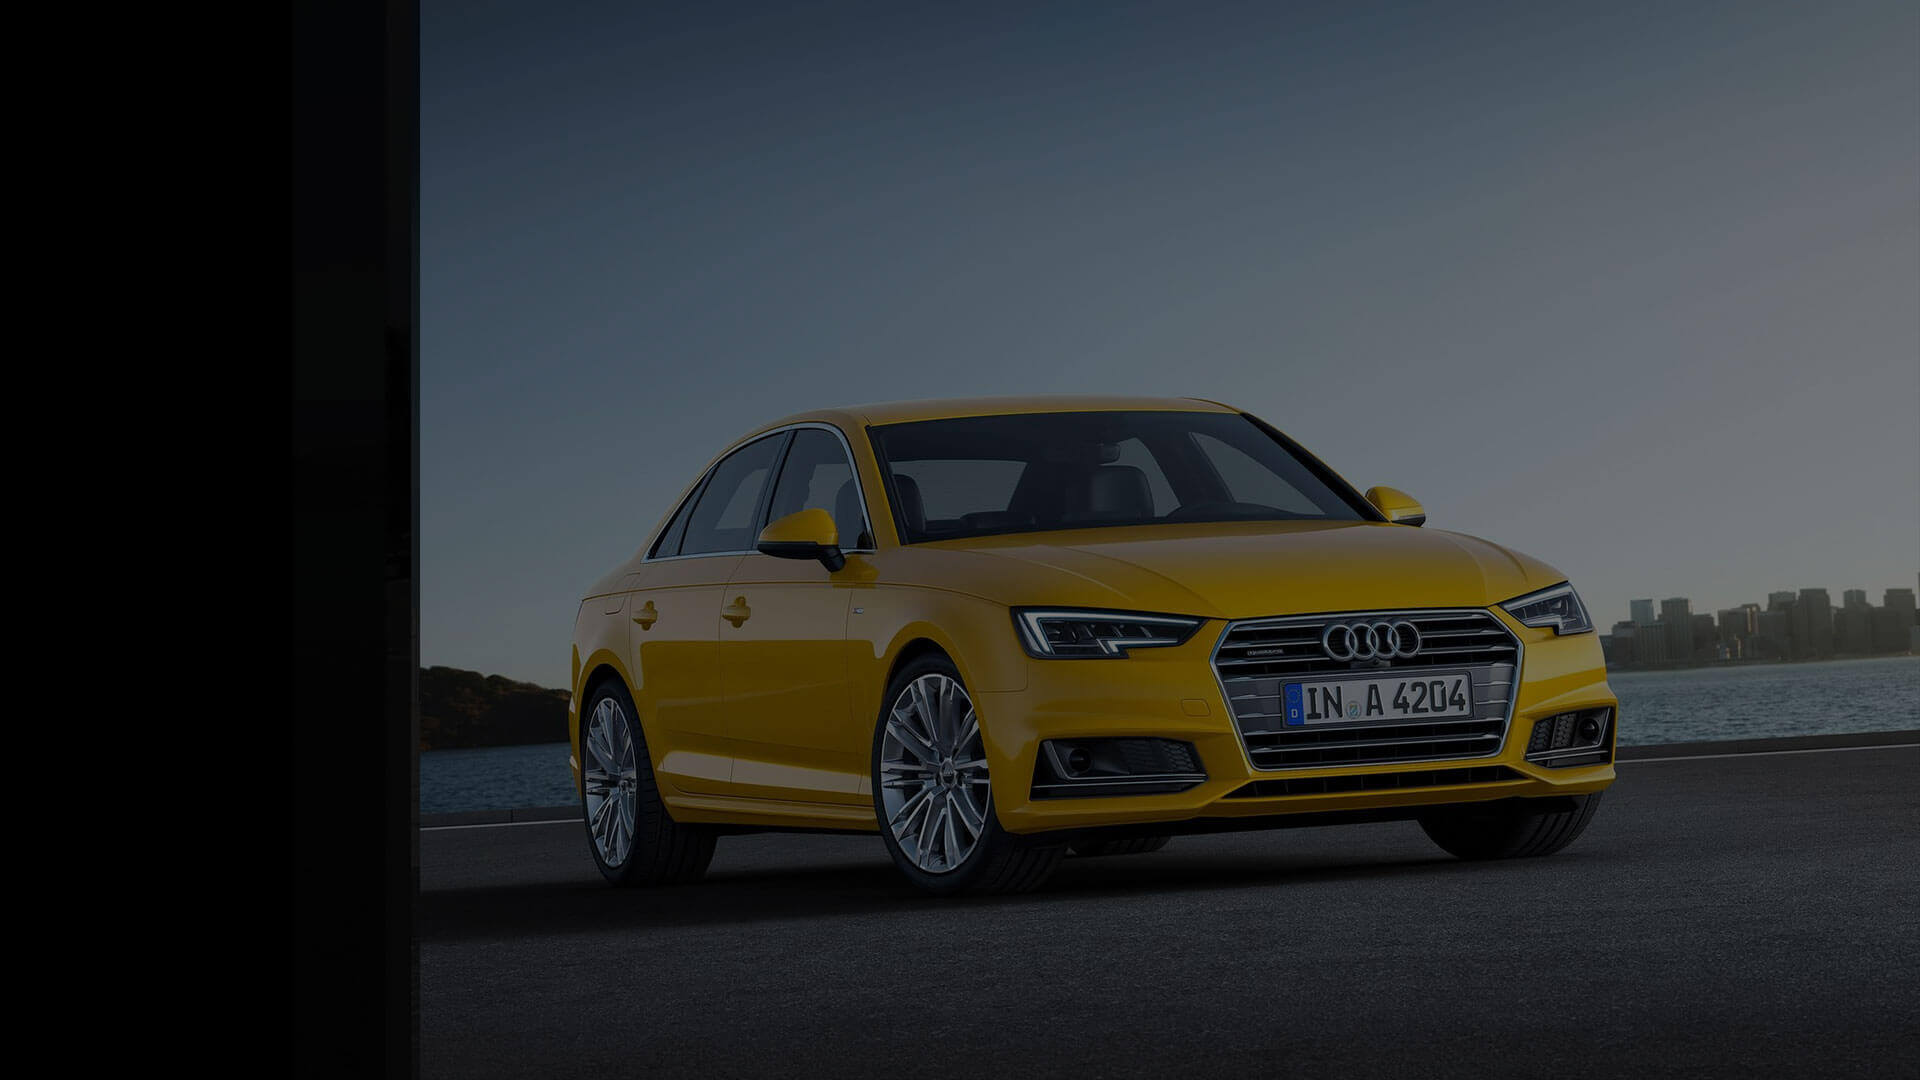 Audi A4 / S4 / RS4 B9 | Carista OBD2 supported vehicles | See what's